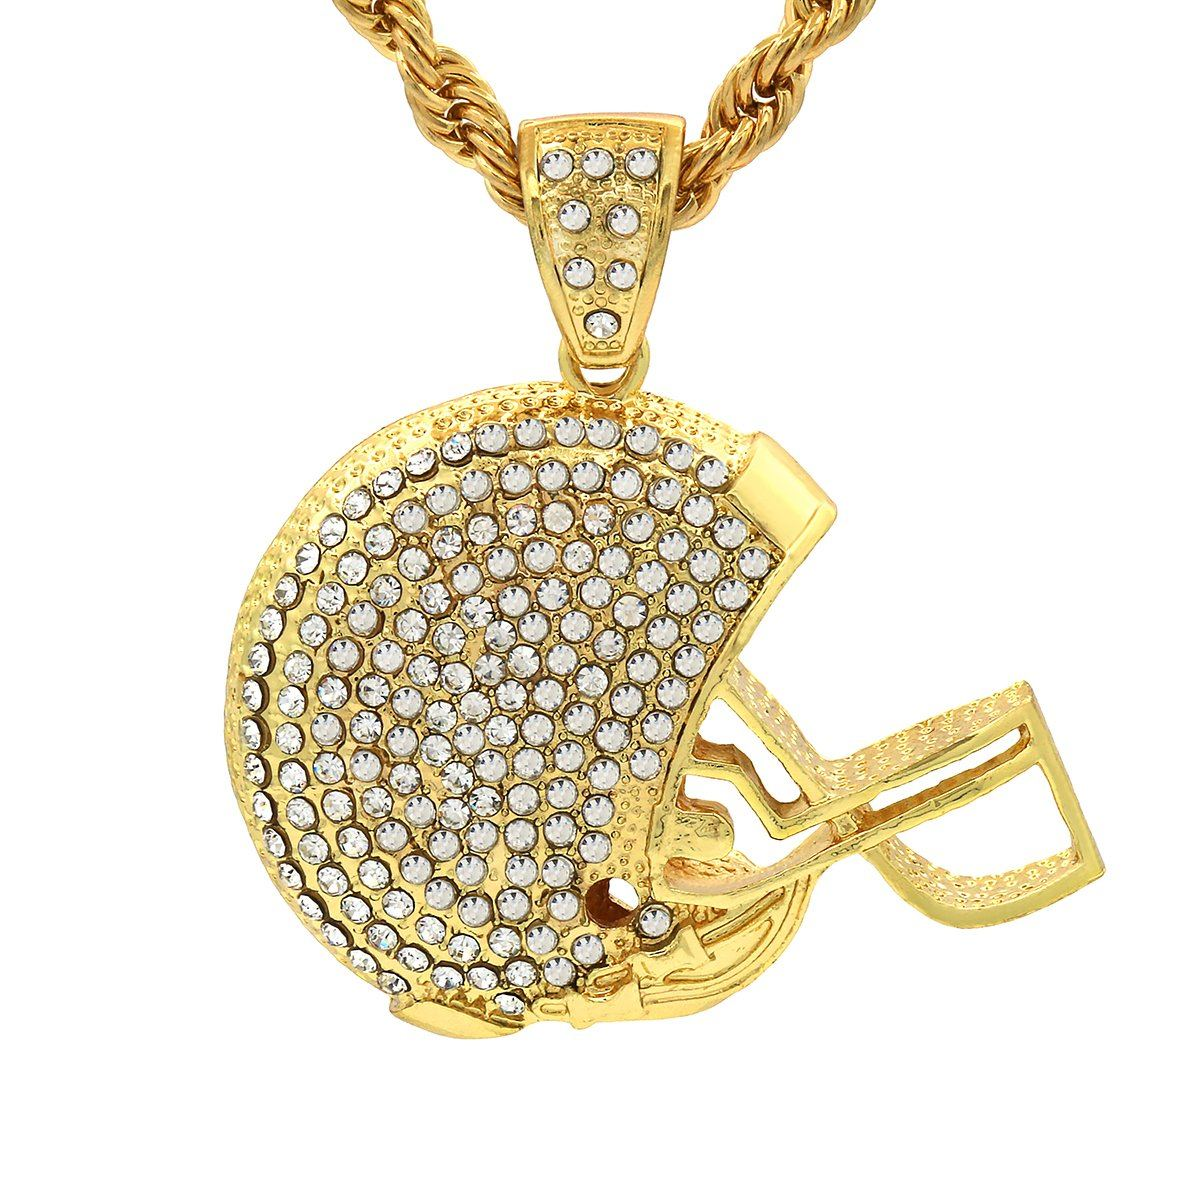 14k Gold Filled NFL Helmet Pendant with Rope Chain